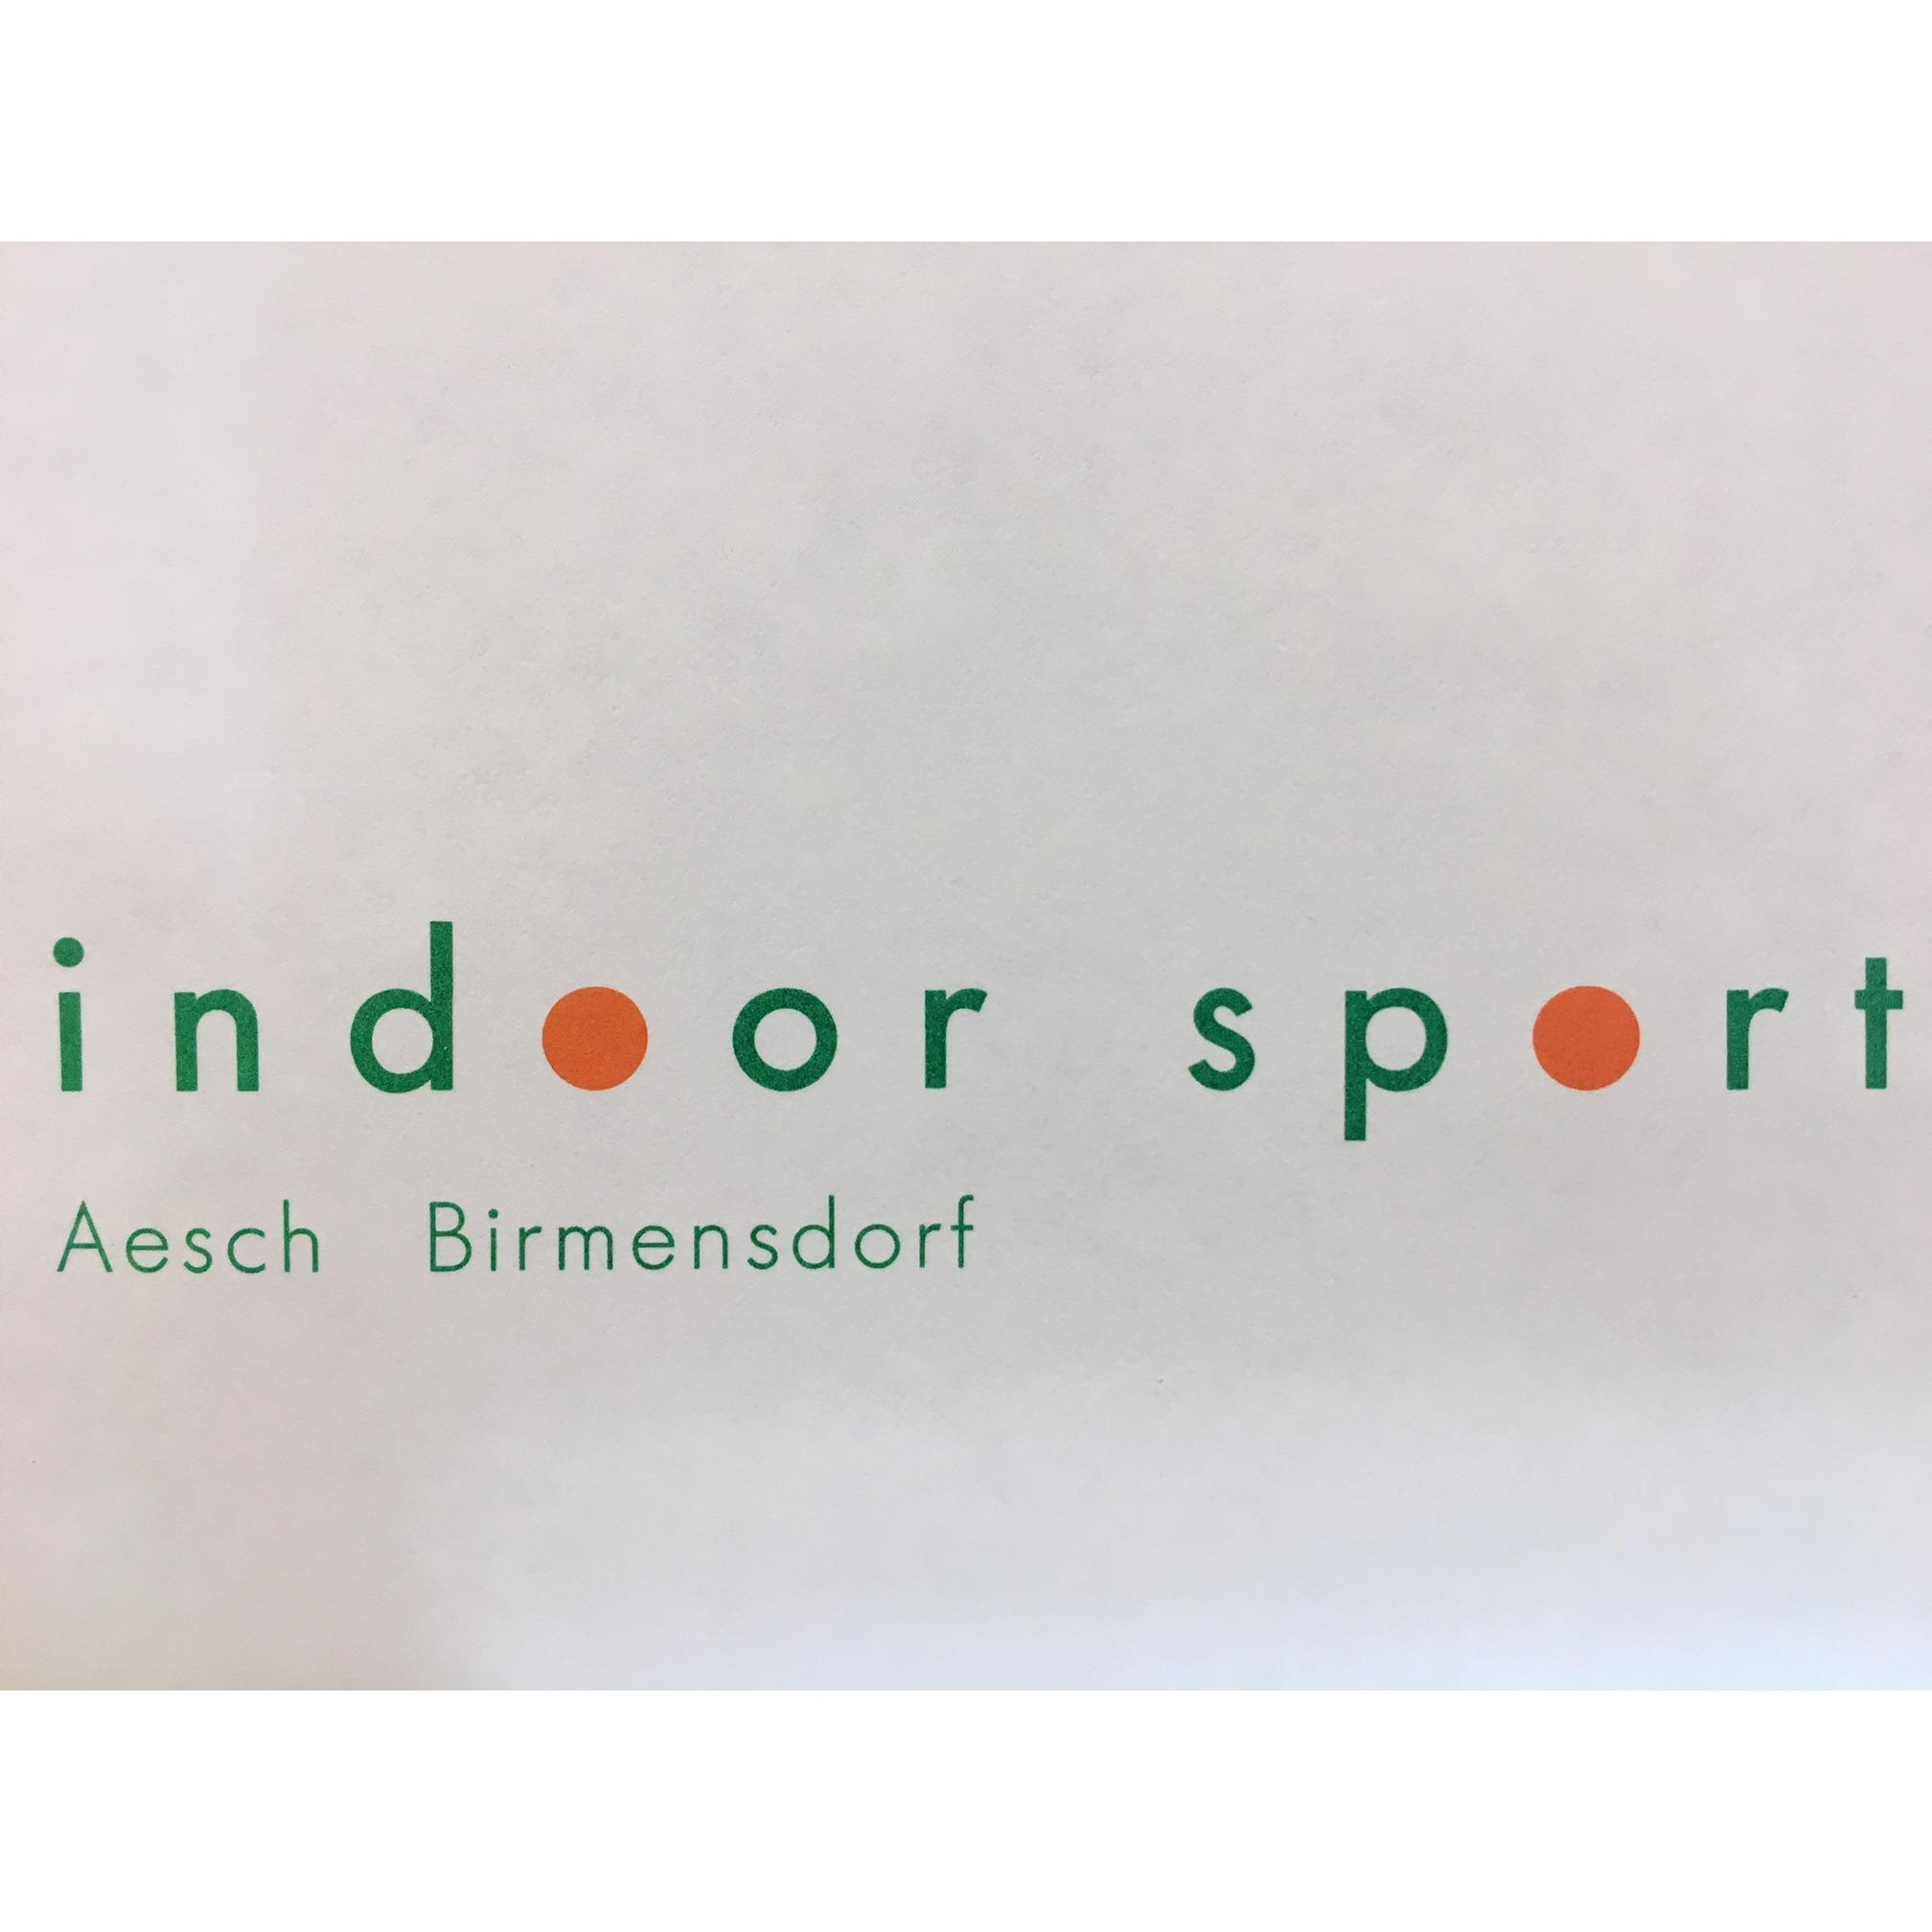 Indoor Sport Aesch